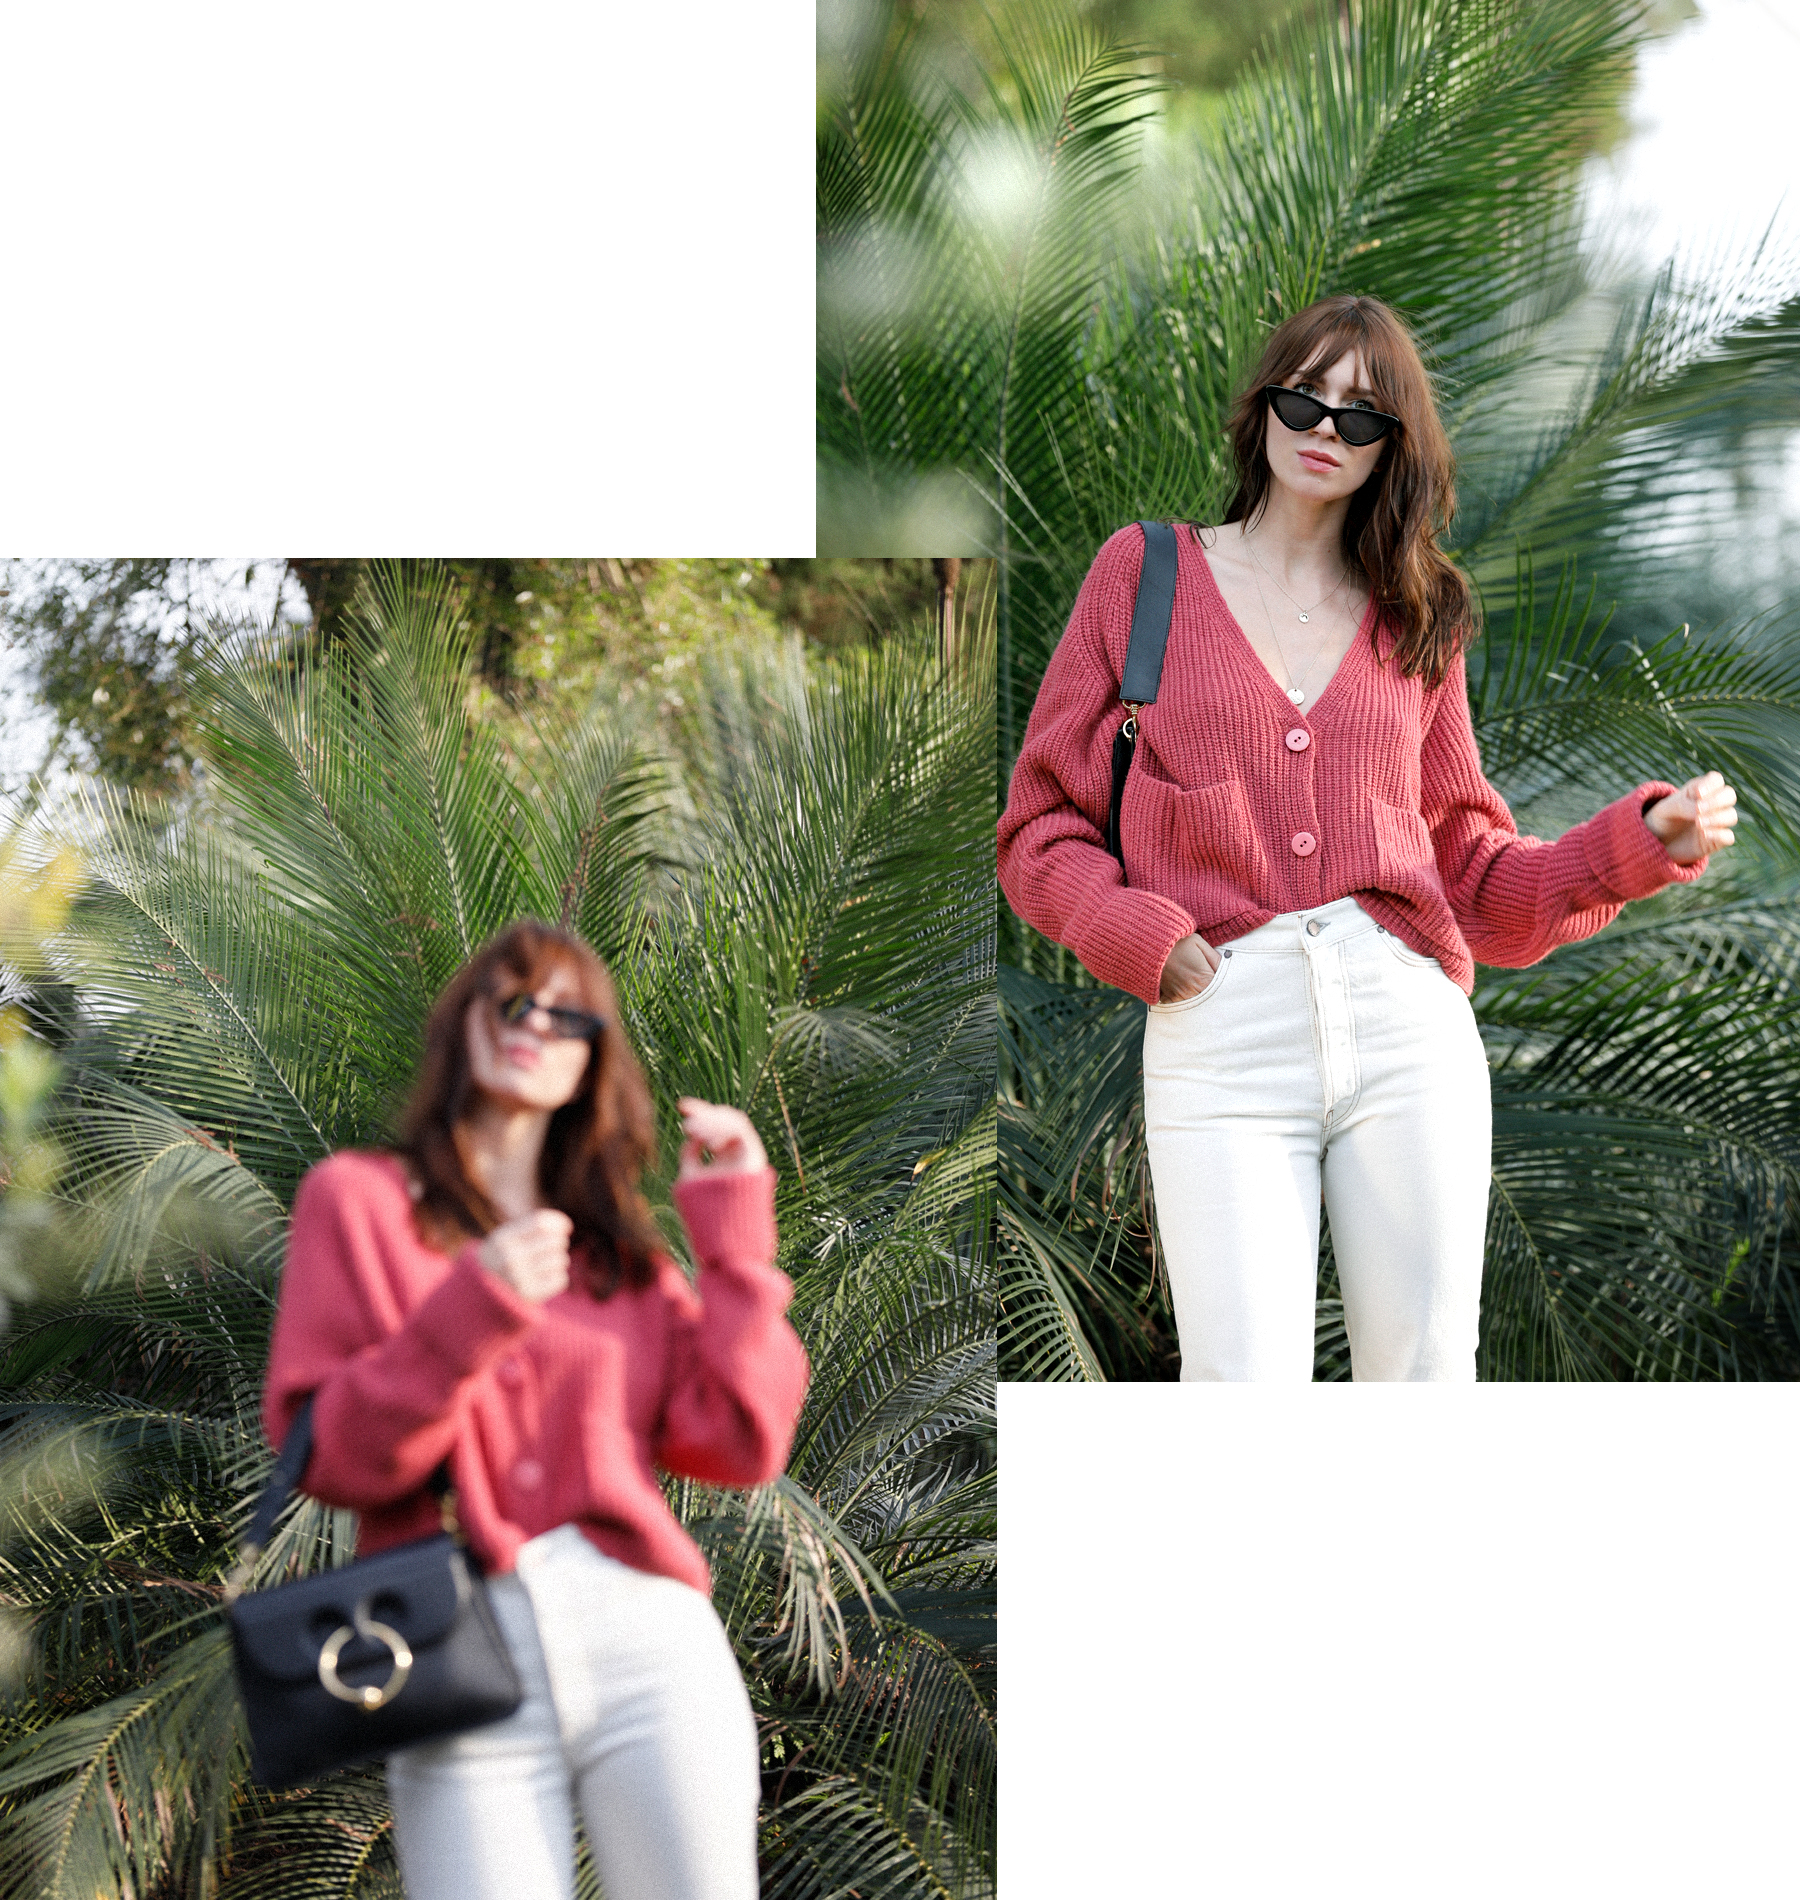 outfit palm trees holiday in winter garden summer spring red cardigan parisienne style pierce bag j.w. anderson white jeans flattered slippers cat-eye sunglasses last lolita le specs adam selman ricarda schernus catsanddogbslog modeblogger düsseldorf 2